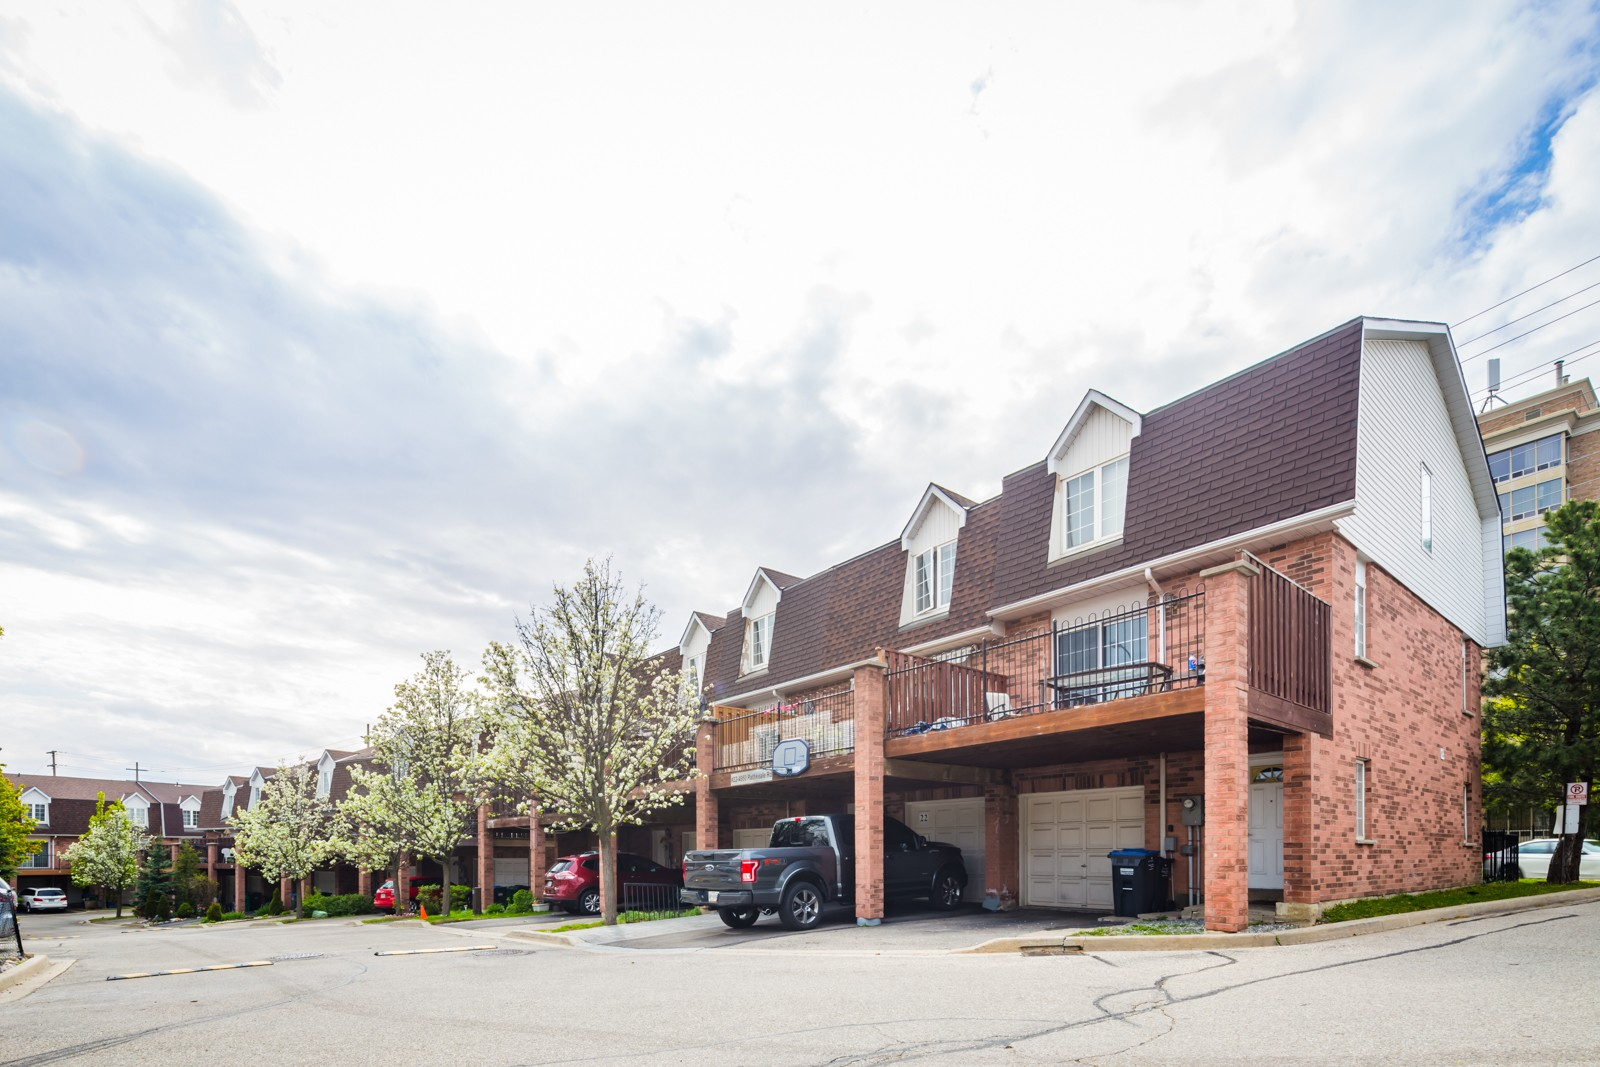 4950 Rathkeale Rd Townhouses at 4920 Rathkeale Rd, Mississauga 1